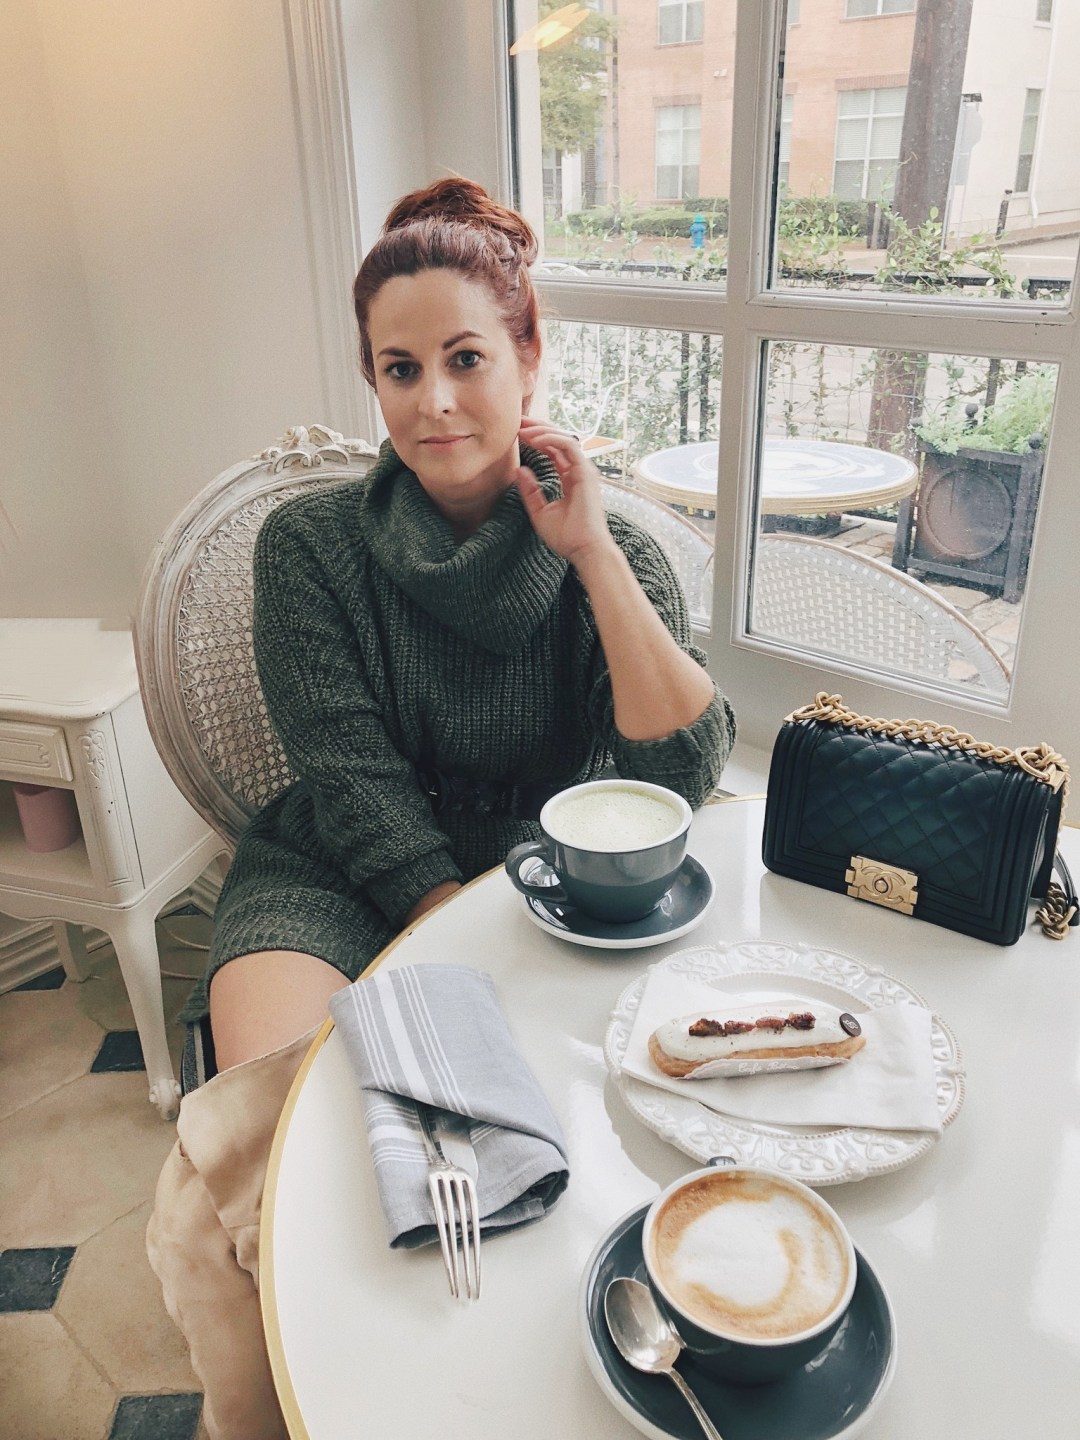 brunch french style, outfit ideas for brunch, chic outfits, high bun inspiration, hair up-do's